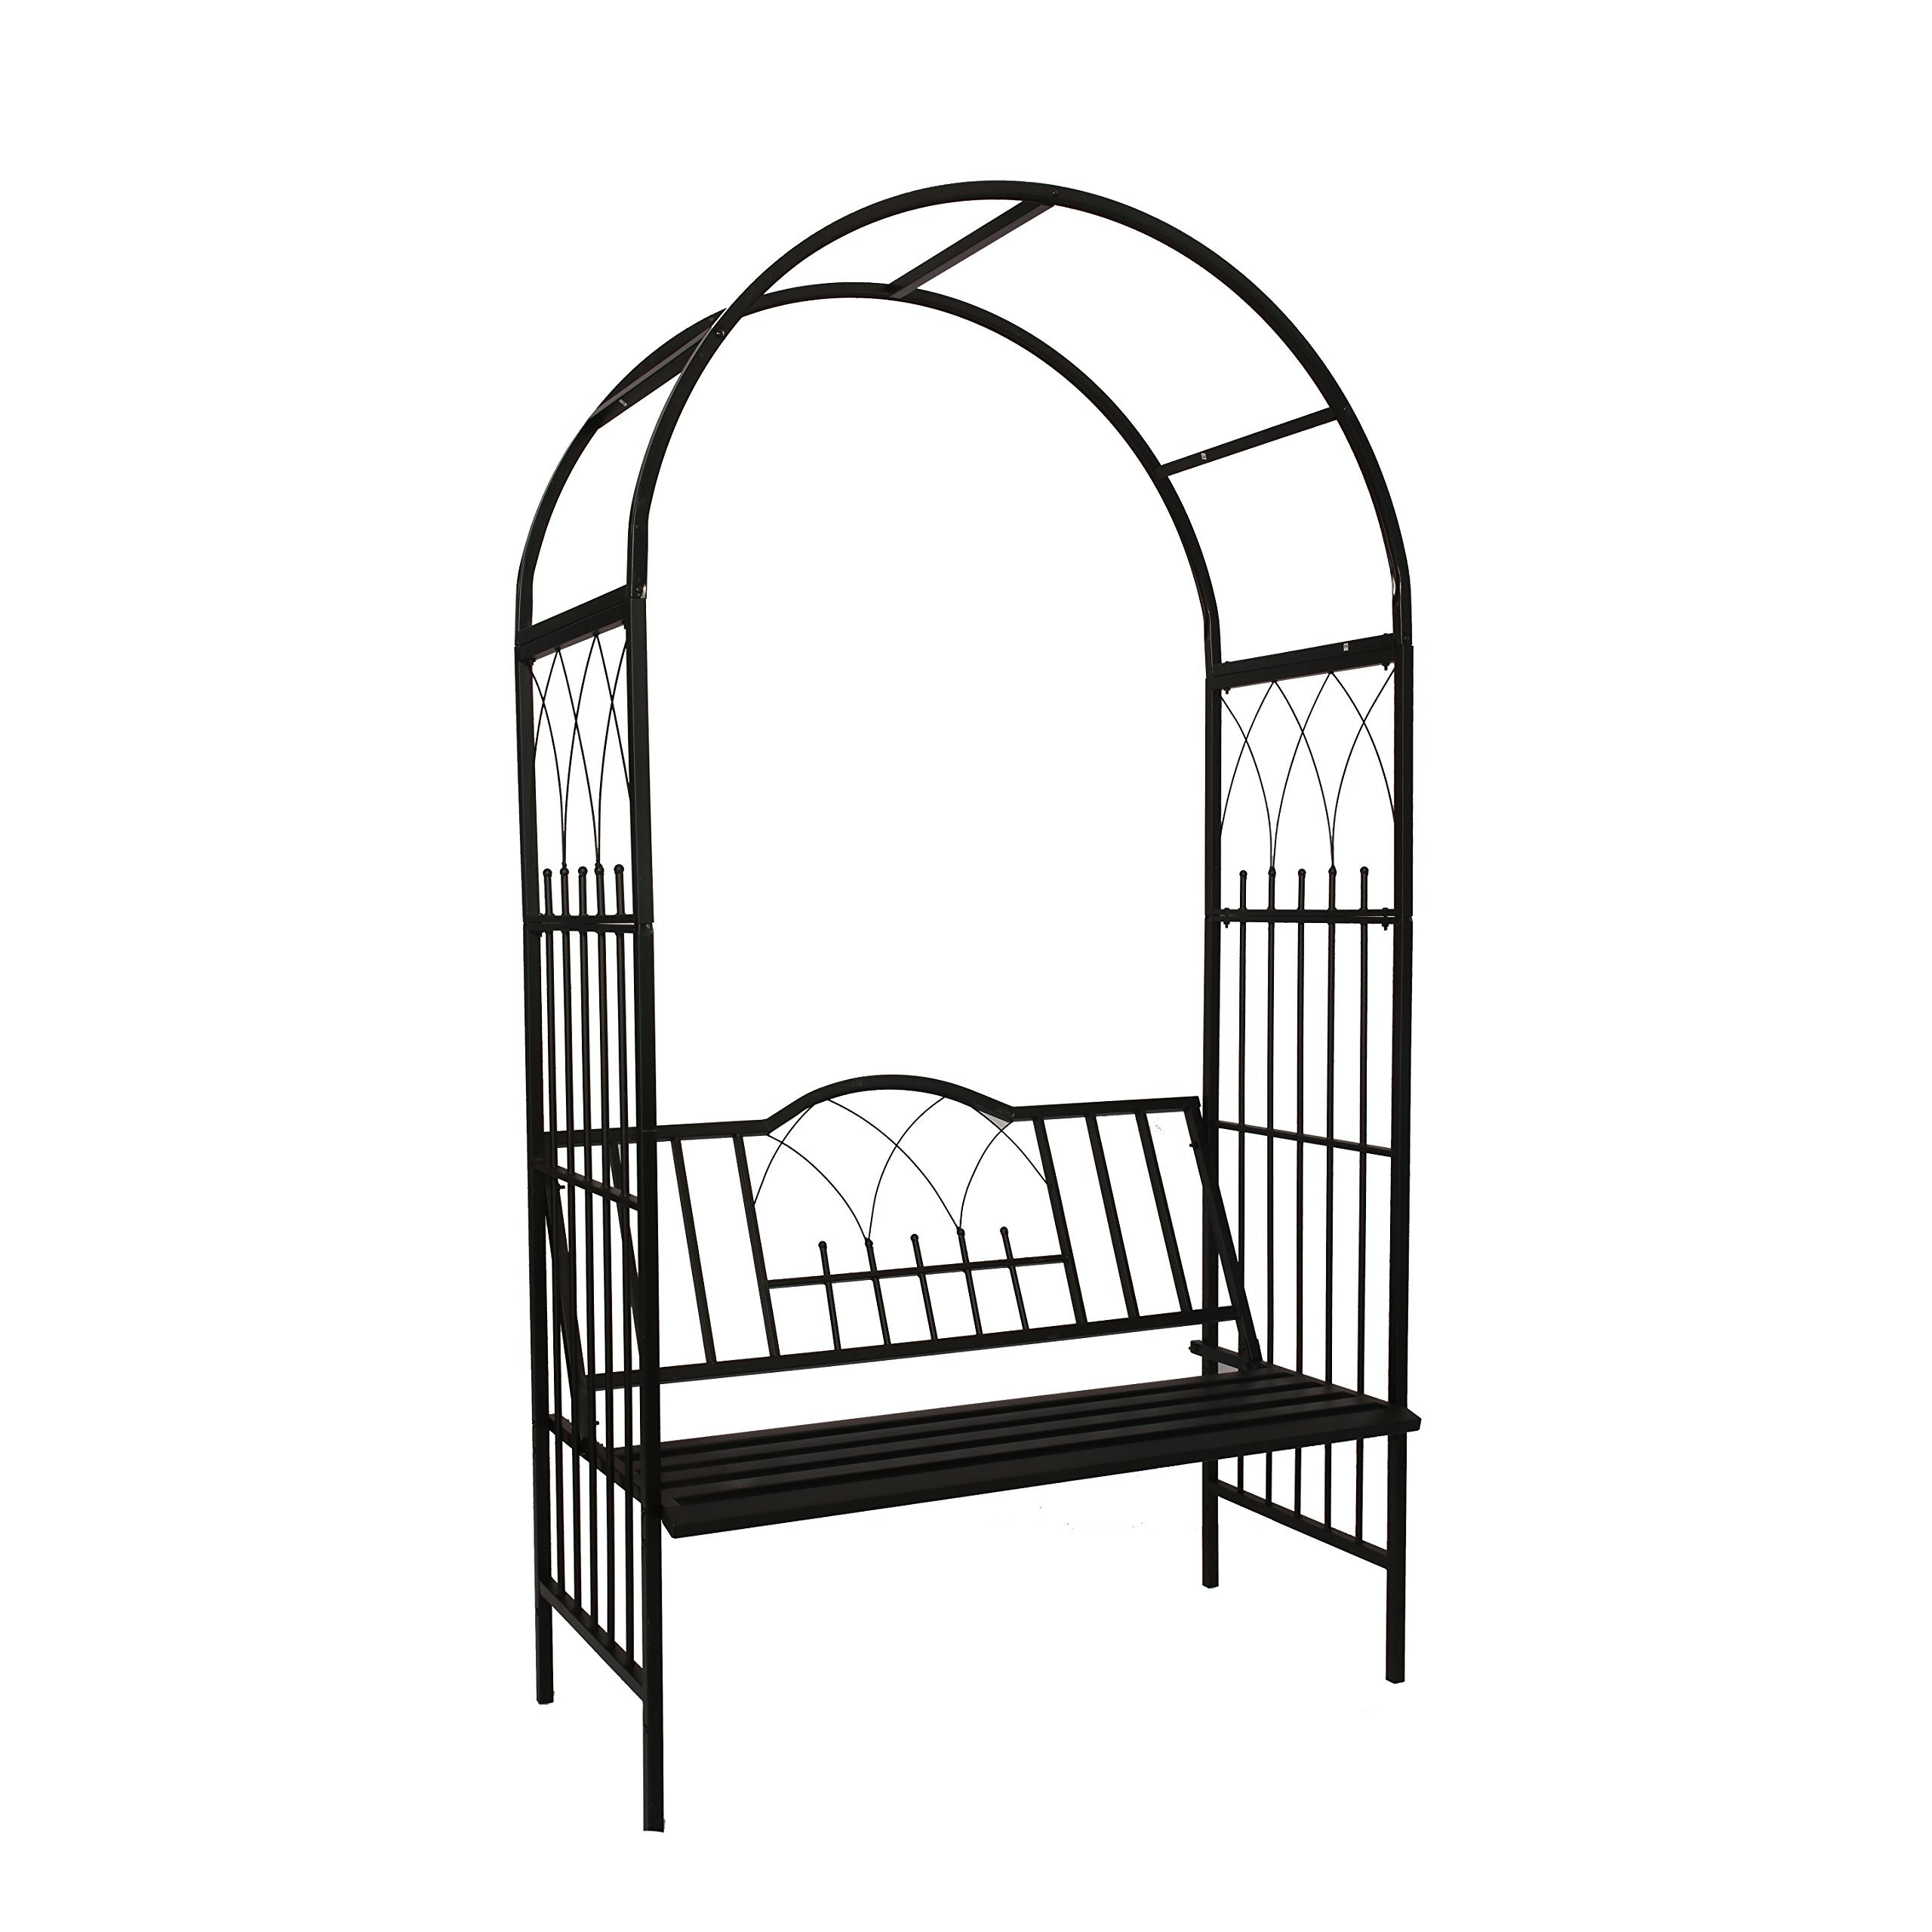 1. GO Steel Garden Arch with Seat for 2 People, 6'9'' High x 3'9'' Wide, Garden Arbor for Various Climbing Plant, Outdoor Garden Lawn Backyard